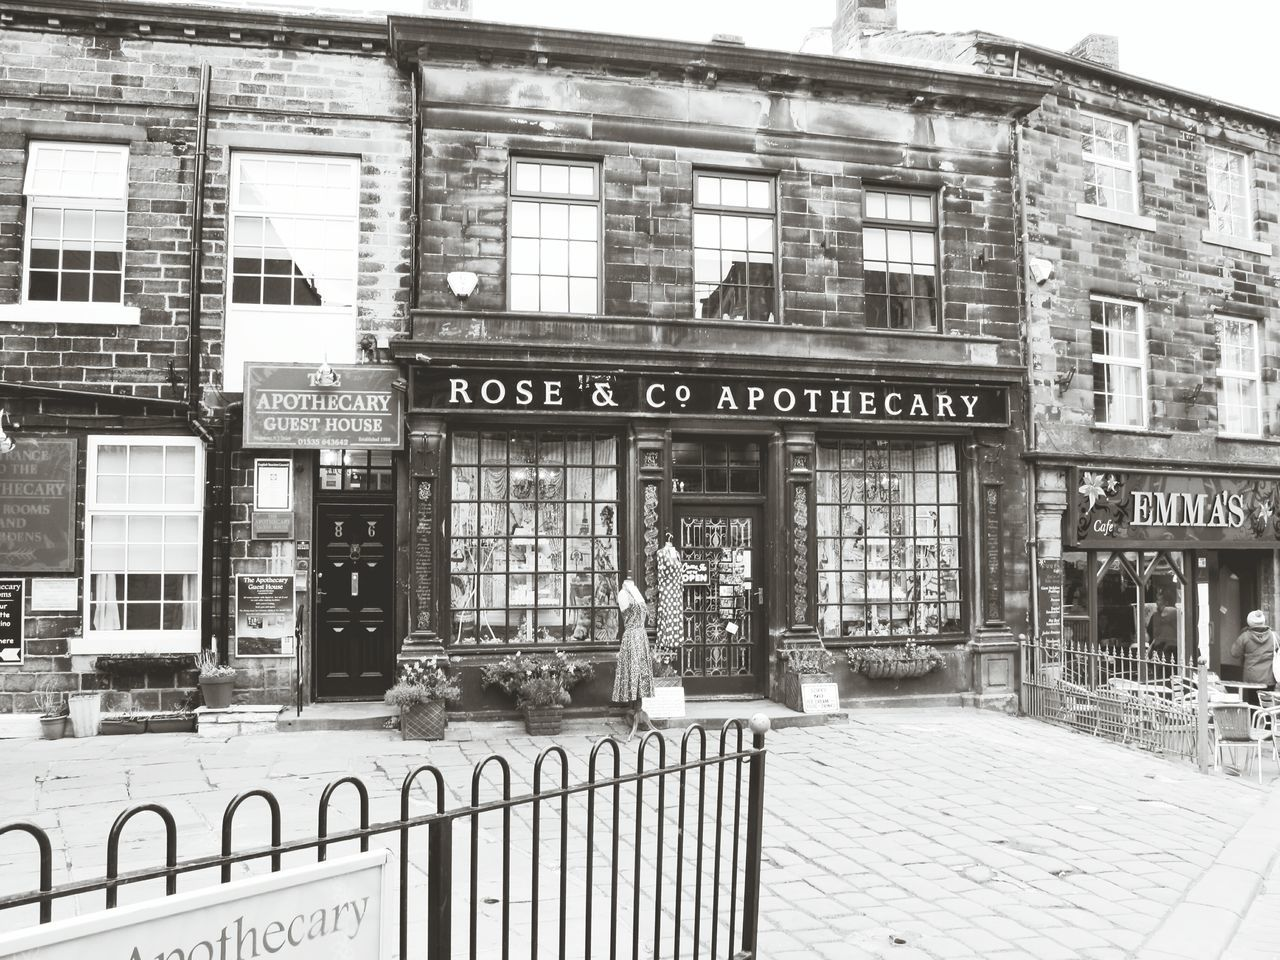 Street Photography West Yorkshire Bronte Shop Shops Street Shopping Time Showcase April Landscape Day Out Old World Architecture Yorkshire Architecture Antique England Monochrome Black And White Black & White Black And White Architecture Quintessential English Scene Old England Tourist Attraction  Bronte Sisters Windows Vintage Signs